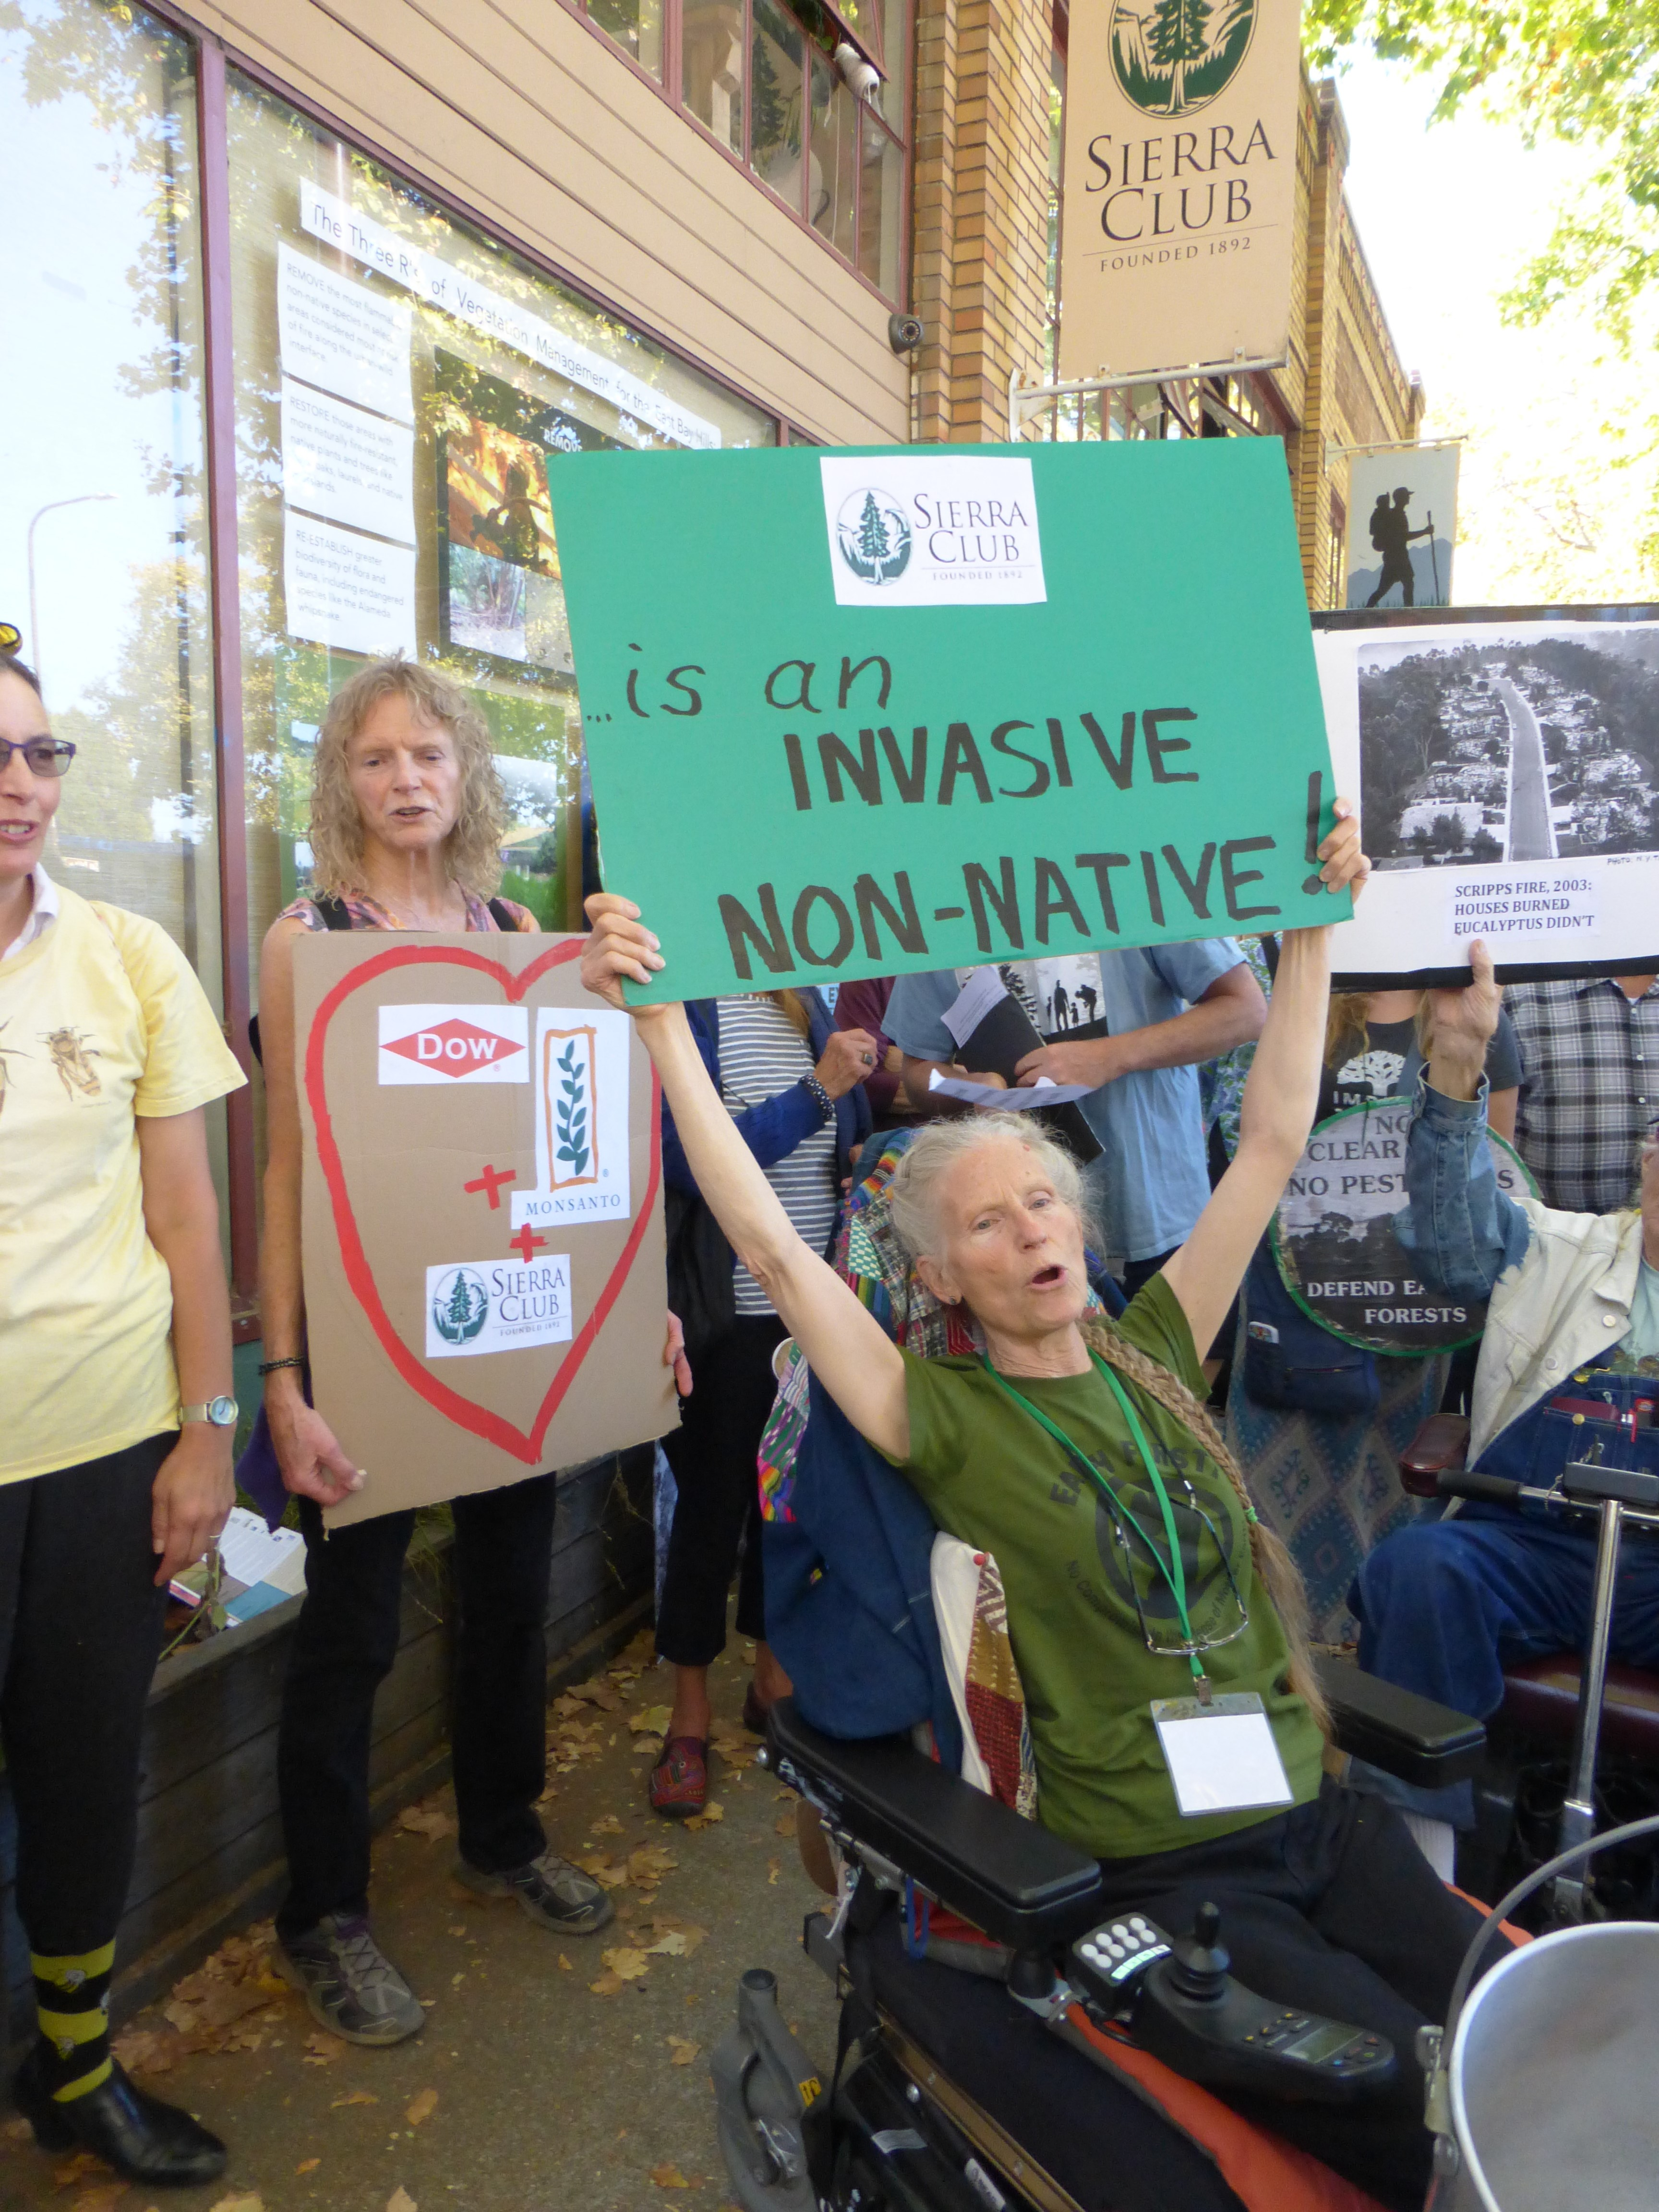 Sierra Club protest, August 25, 2015. About 80 people attended the peaceful protest.